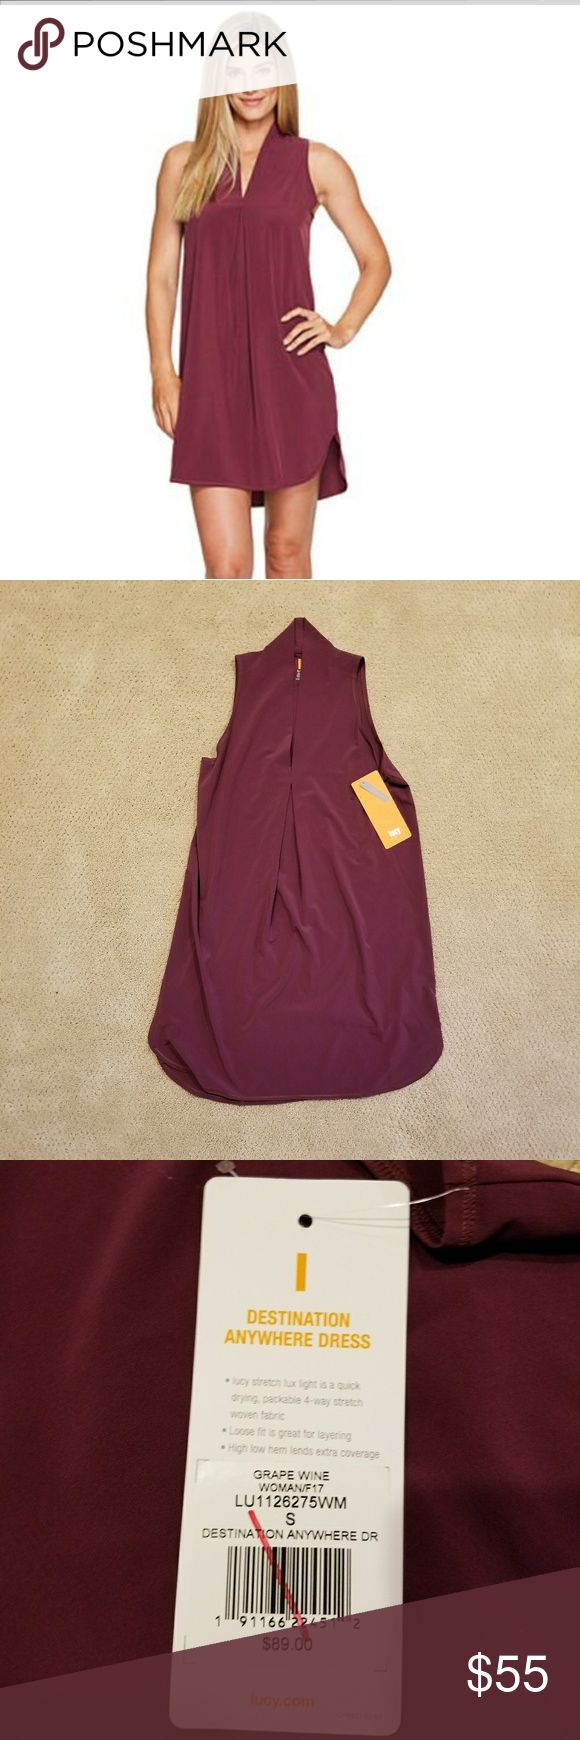 NWT! Lucy Destination Anywhere Dress NWT! Comfortable, light weight fabric. Quick drying. Great for layering. Grape Wine color. Cute as a dress or with leggings and boots for winter. Lucy Dresses Mini